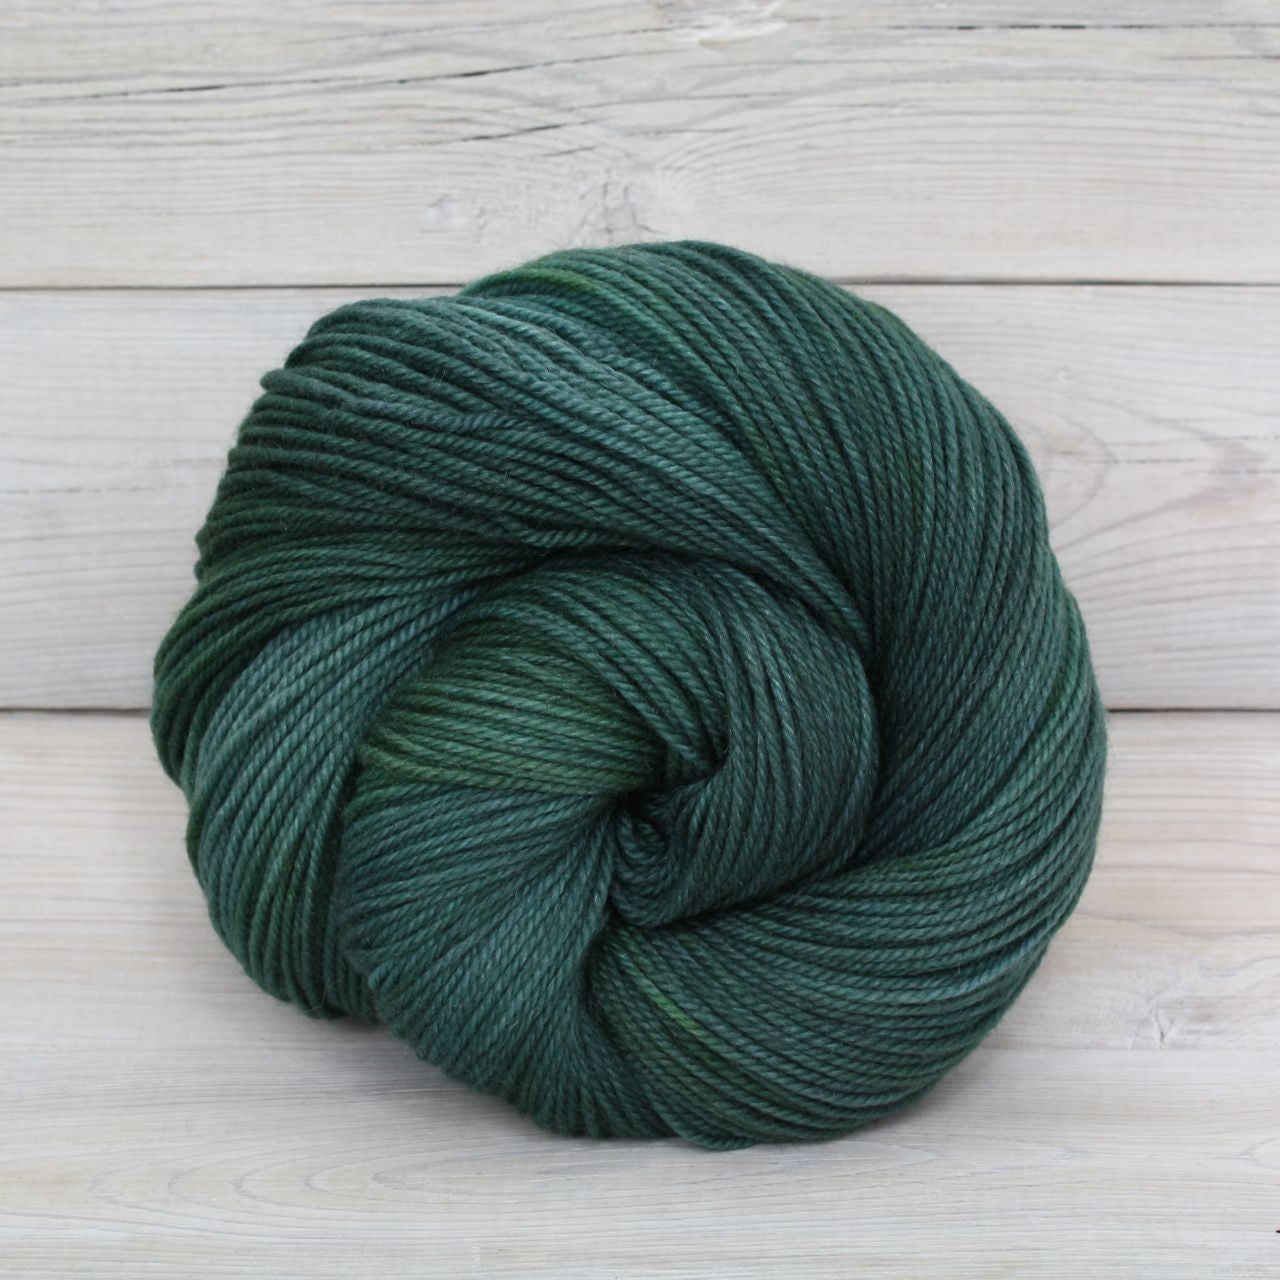 Luna Grey Fiber Arts Zeta Yarn | Colorway: Viridian